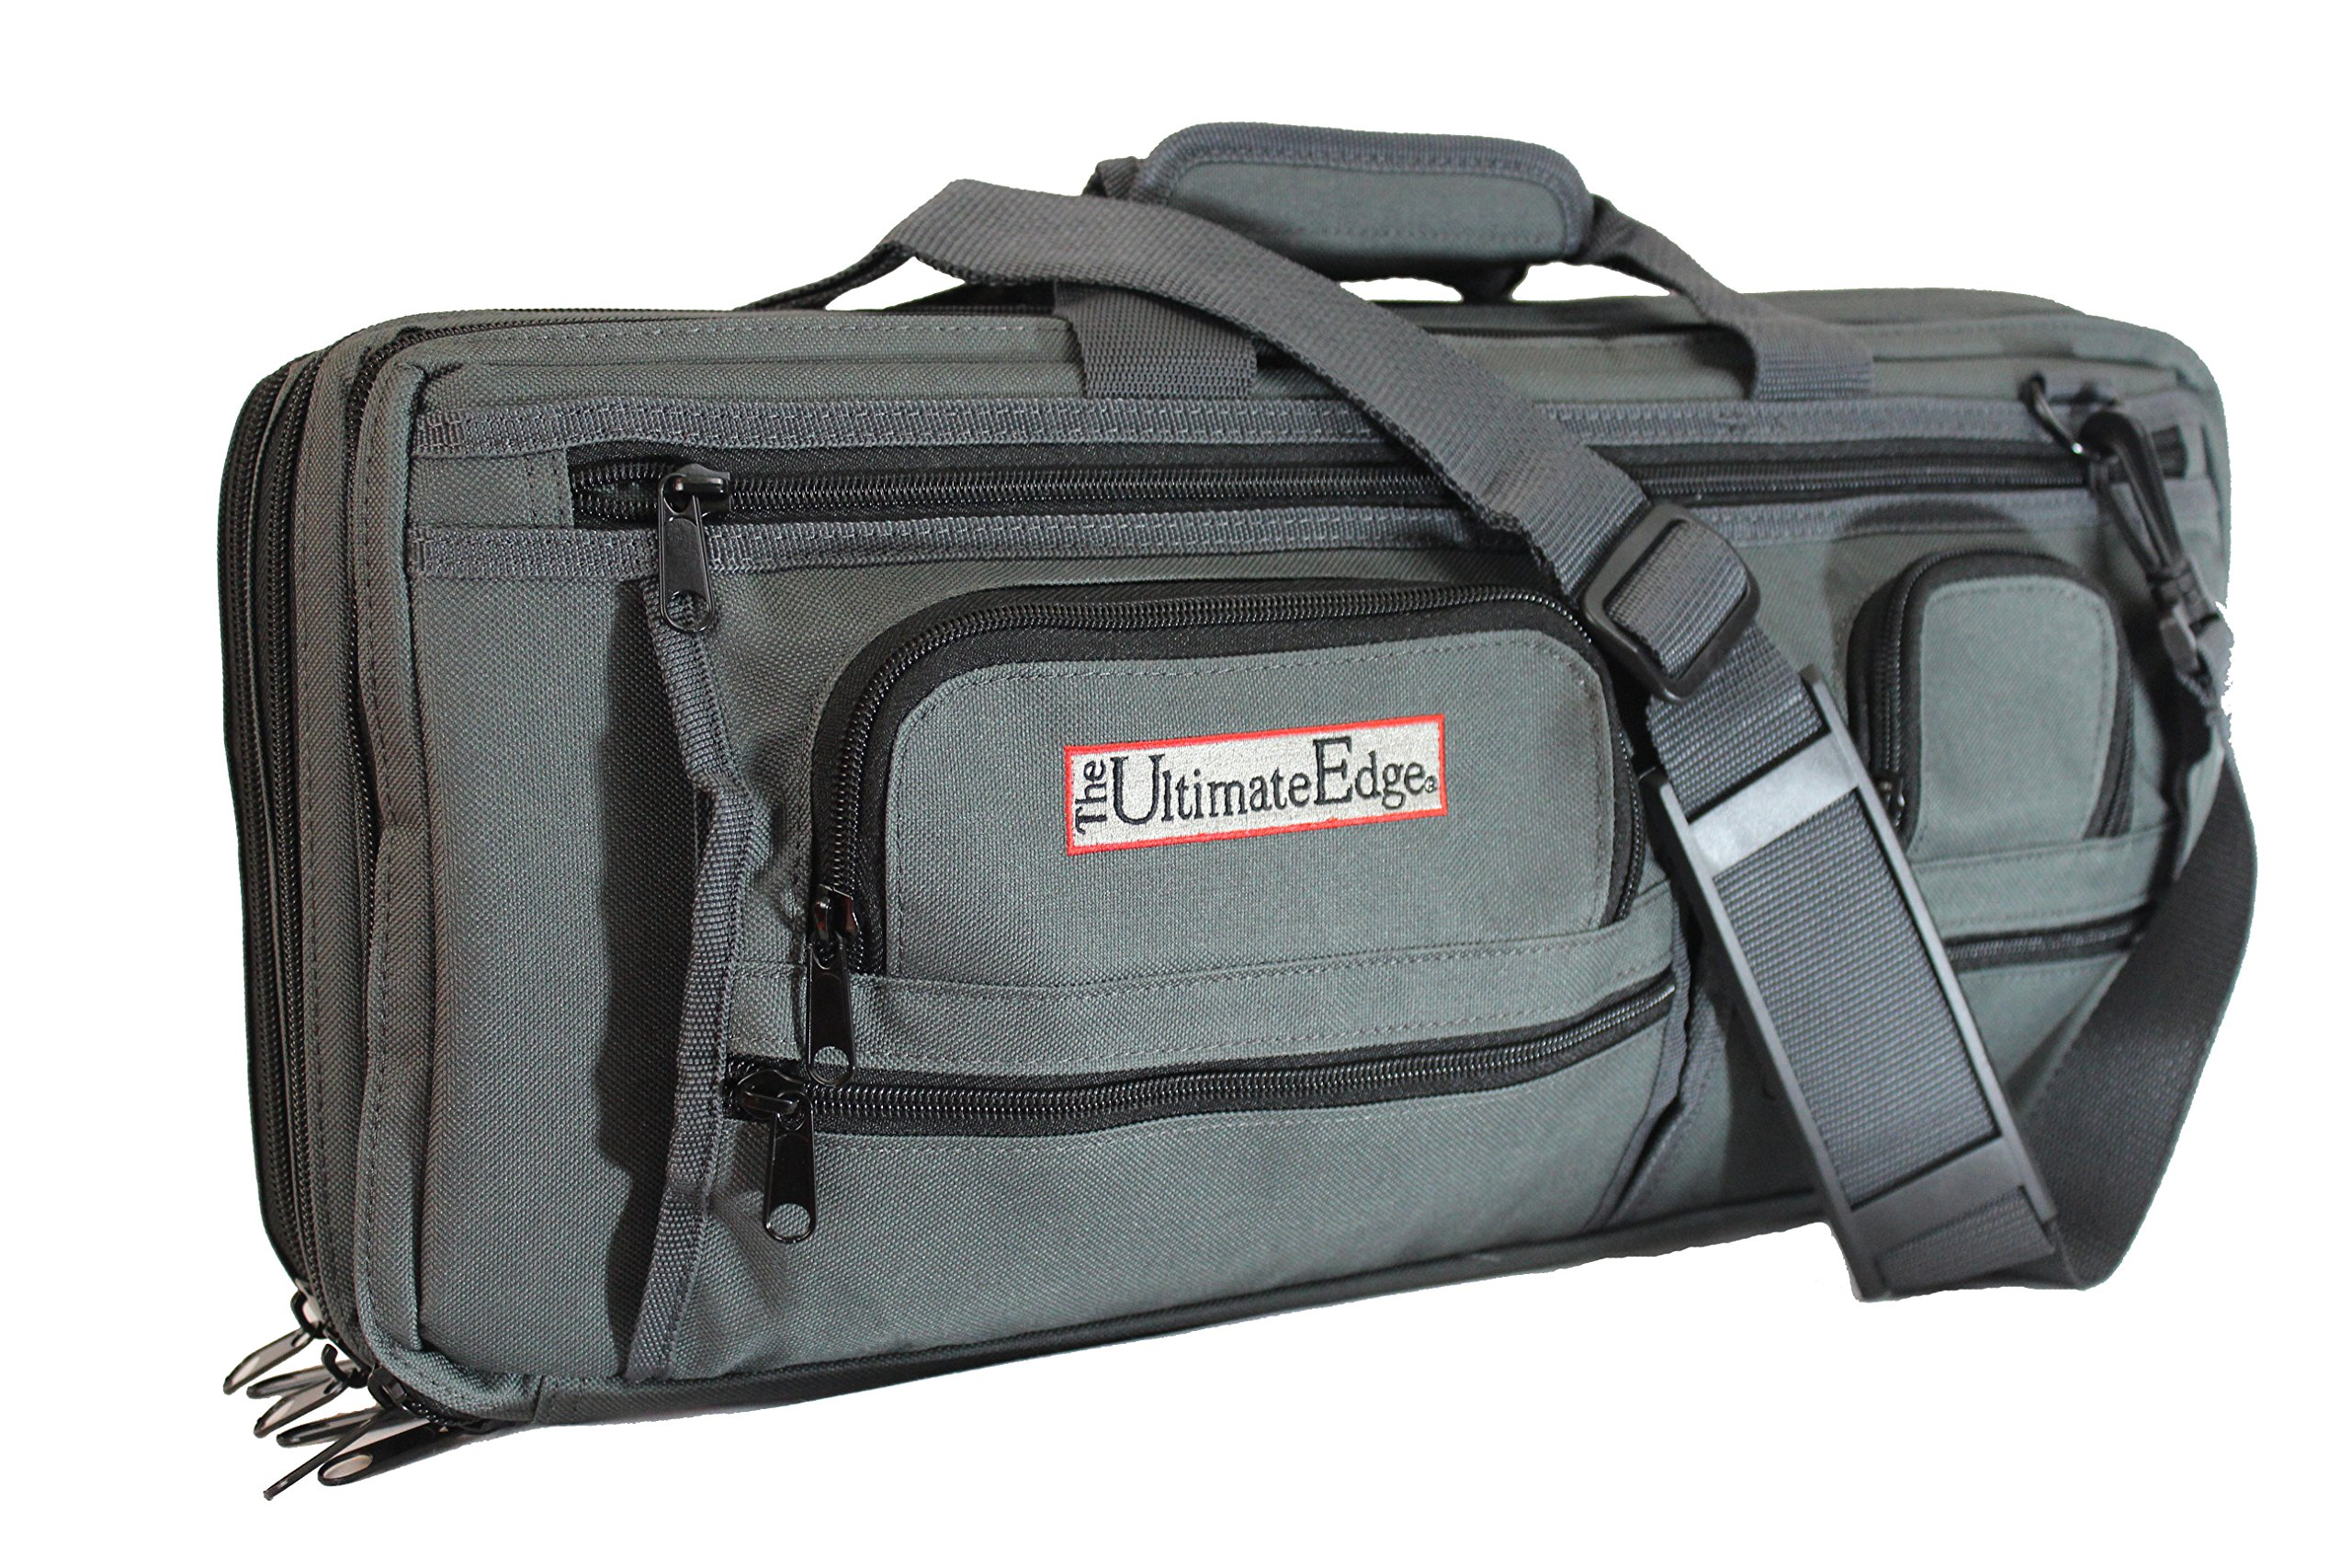 The Ultimate Edge 2001-EDGT Deluxe Chef Knife Case, Graphite by The Ultimate Edge (Image #1)